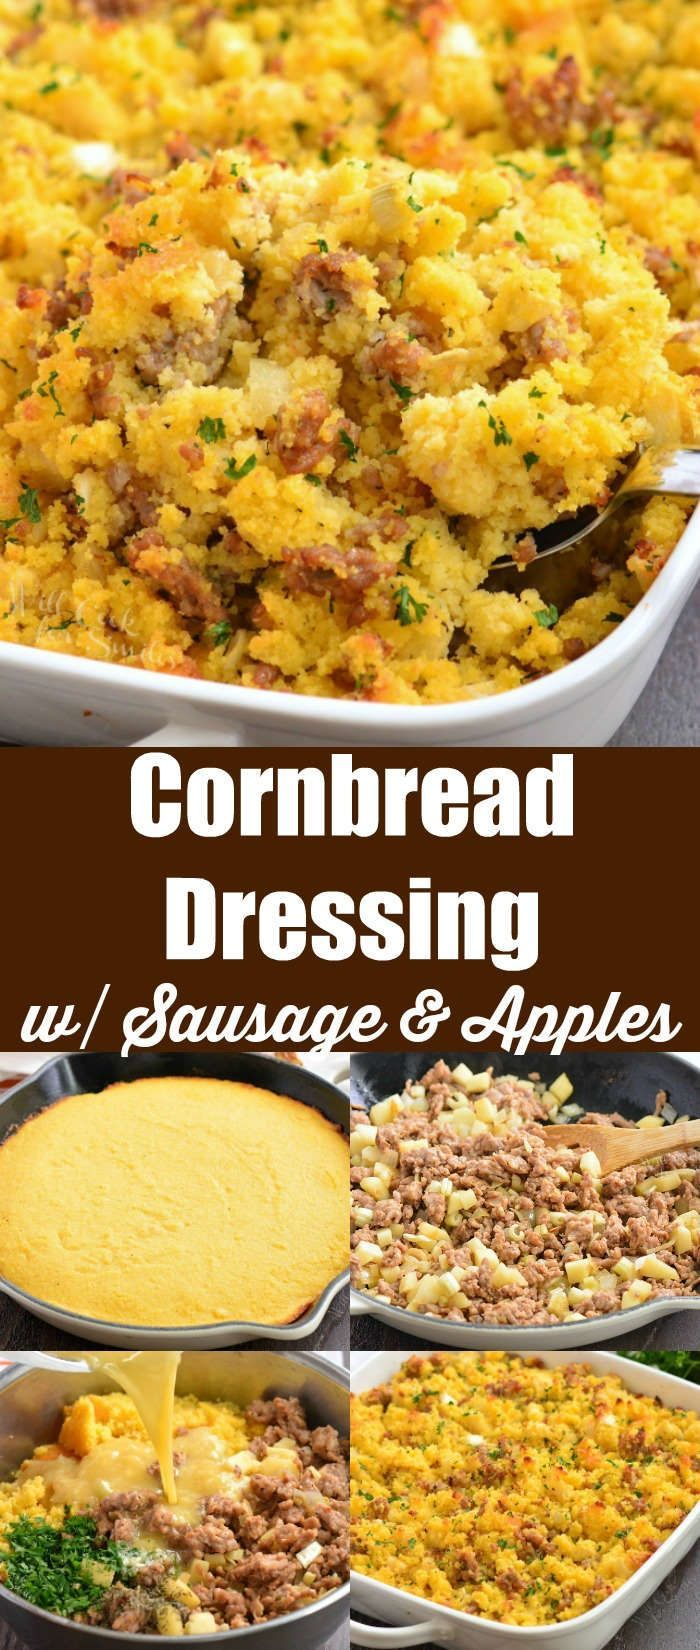 Cornbread Dressing with Sausage and Apples is a great side dish for your holiday dinner.